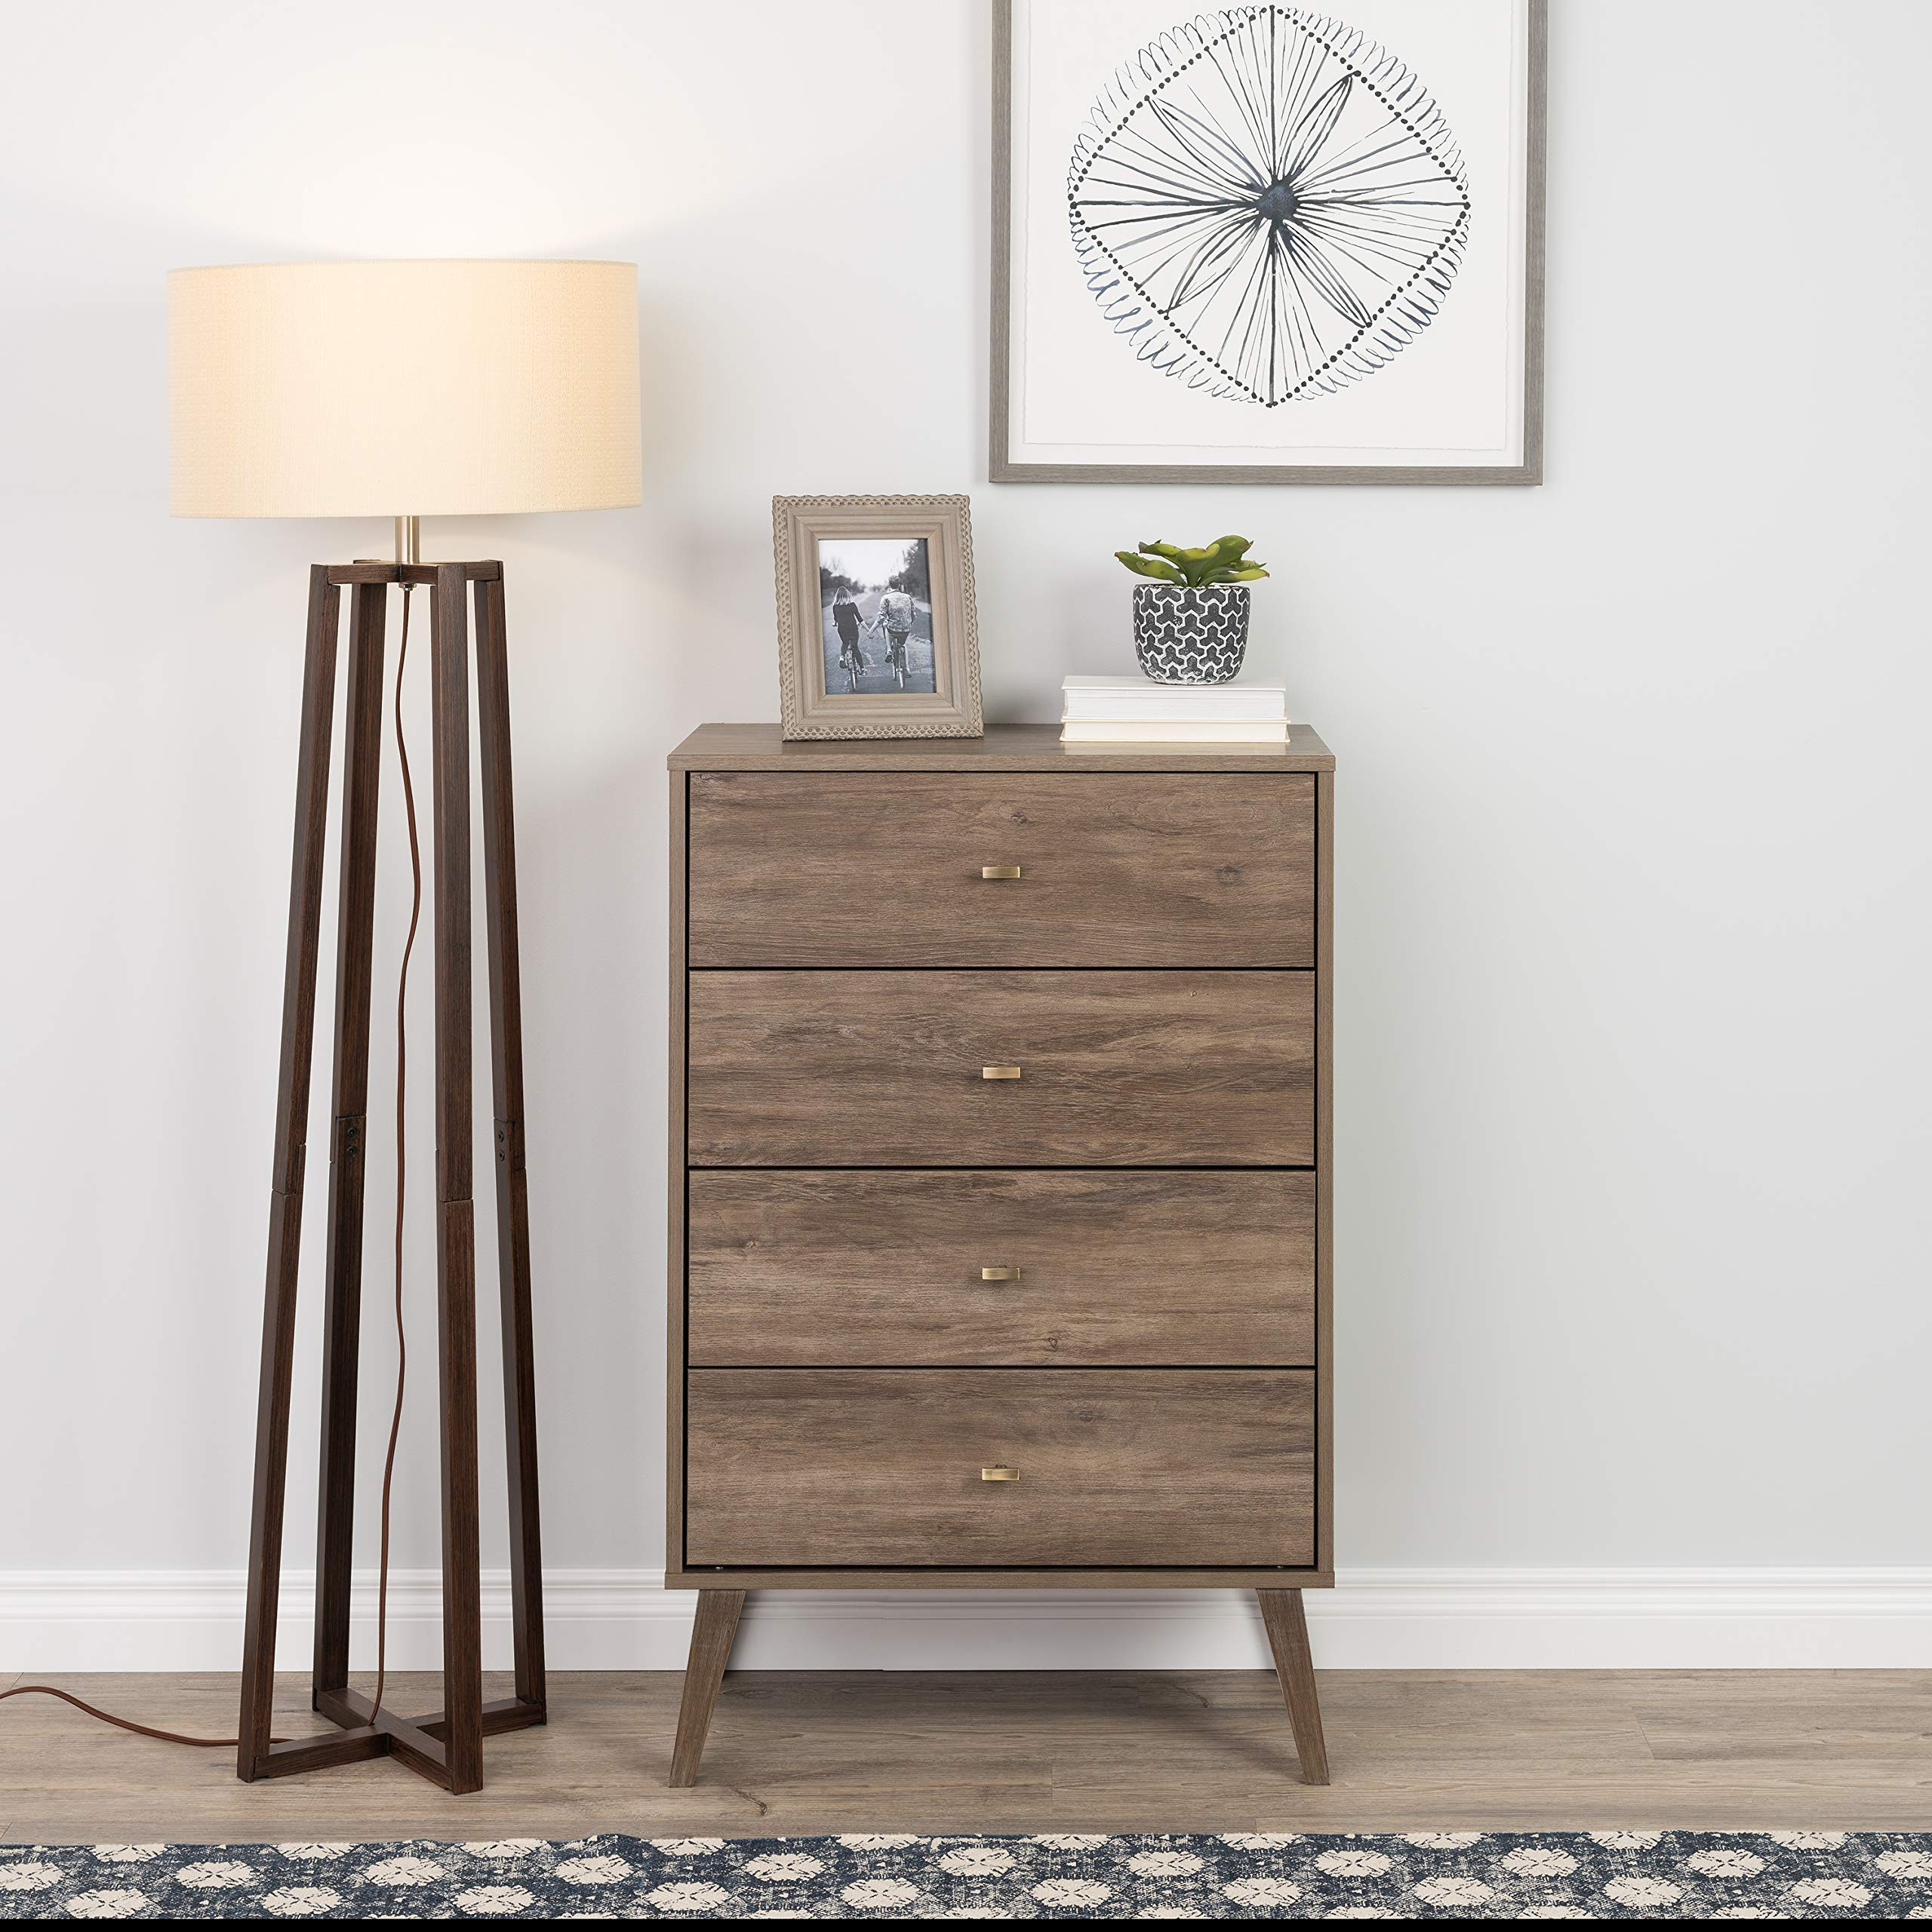 Prepac Milo Mid Century Modern 4 Drawer Chest in Drifted Gray by Prepac